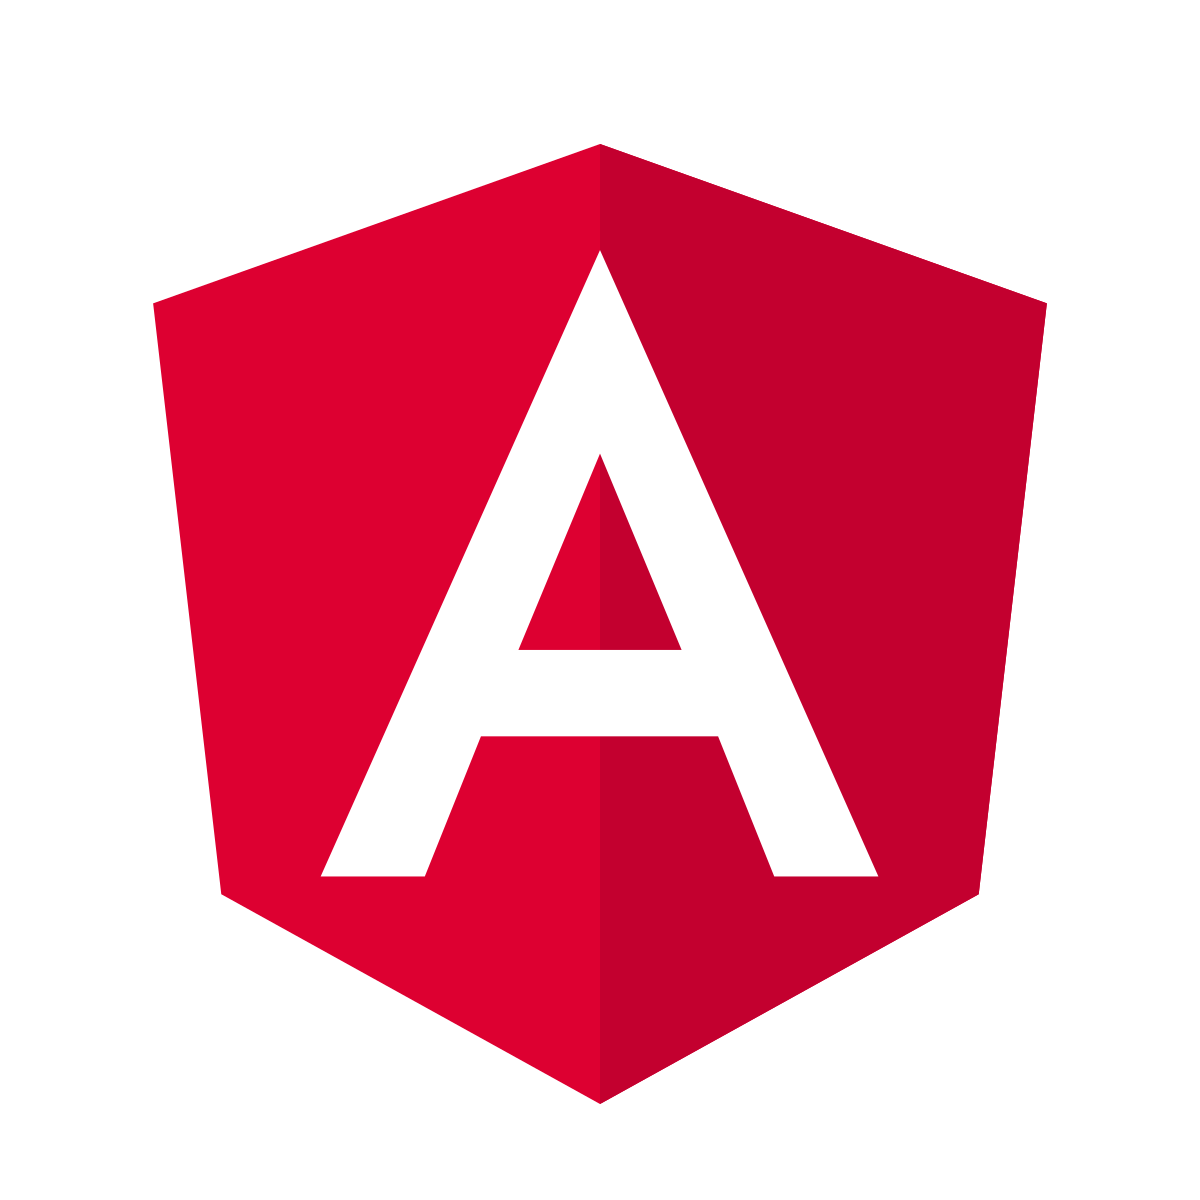 How to add jquery in angular 12?